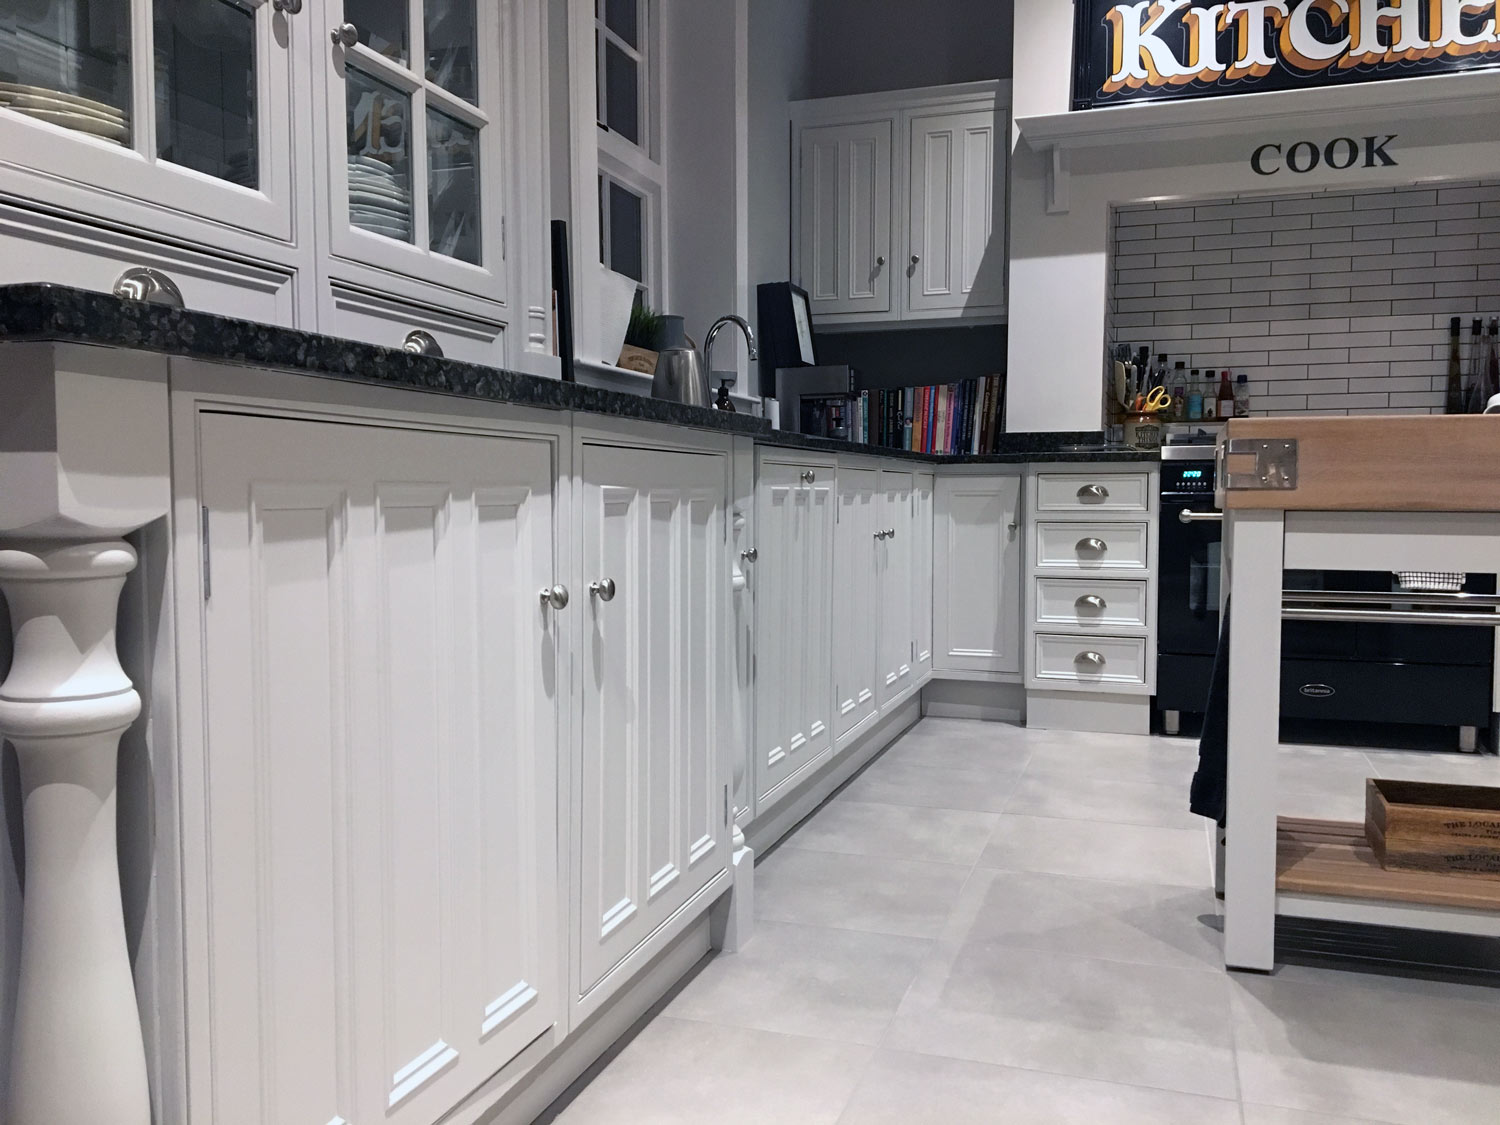 Hand painted kitchen units